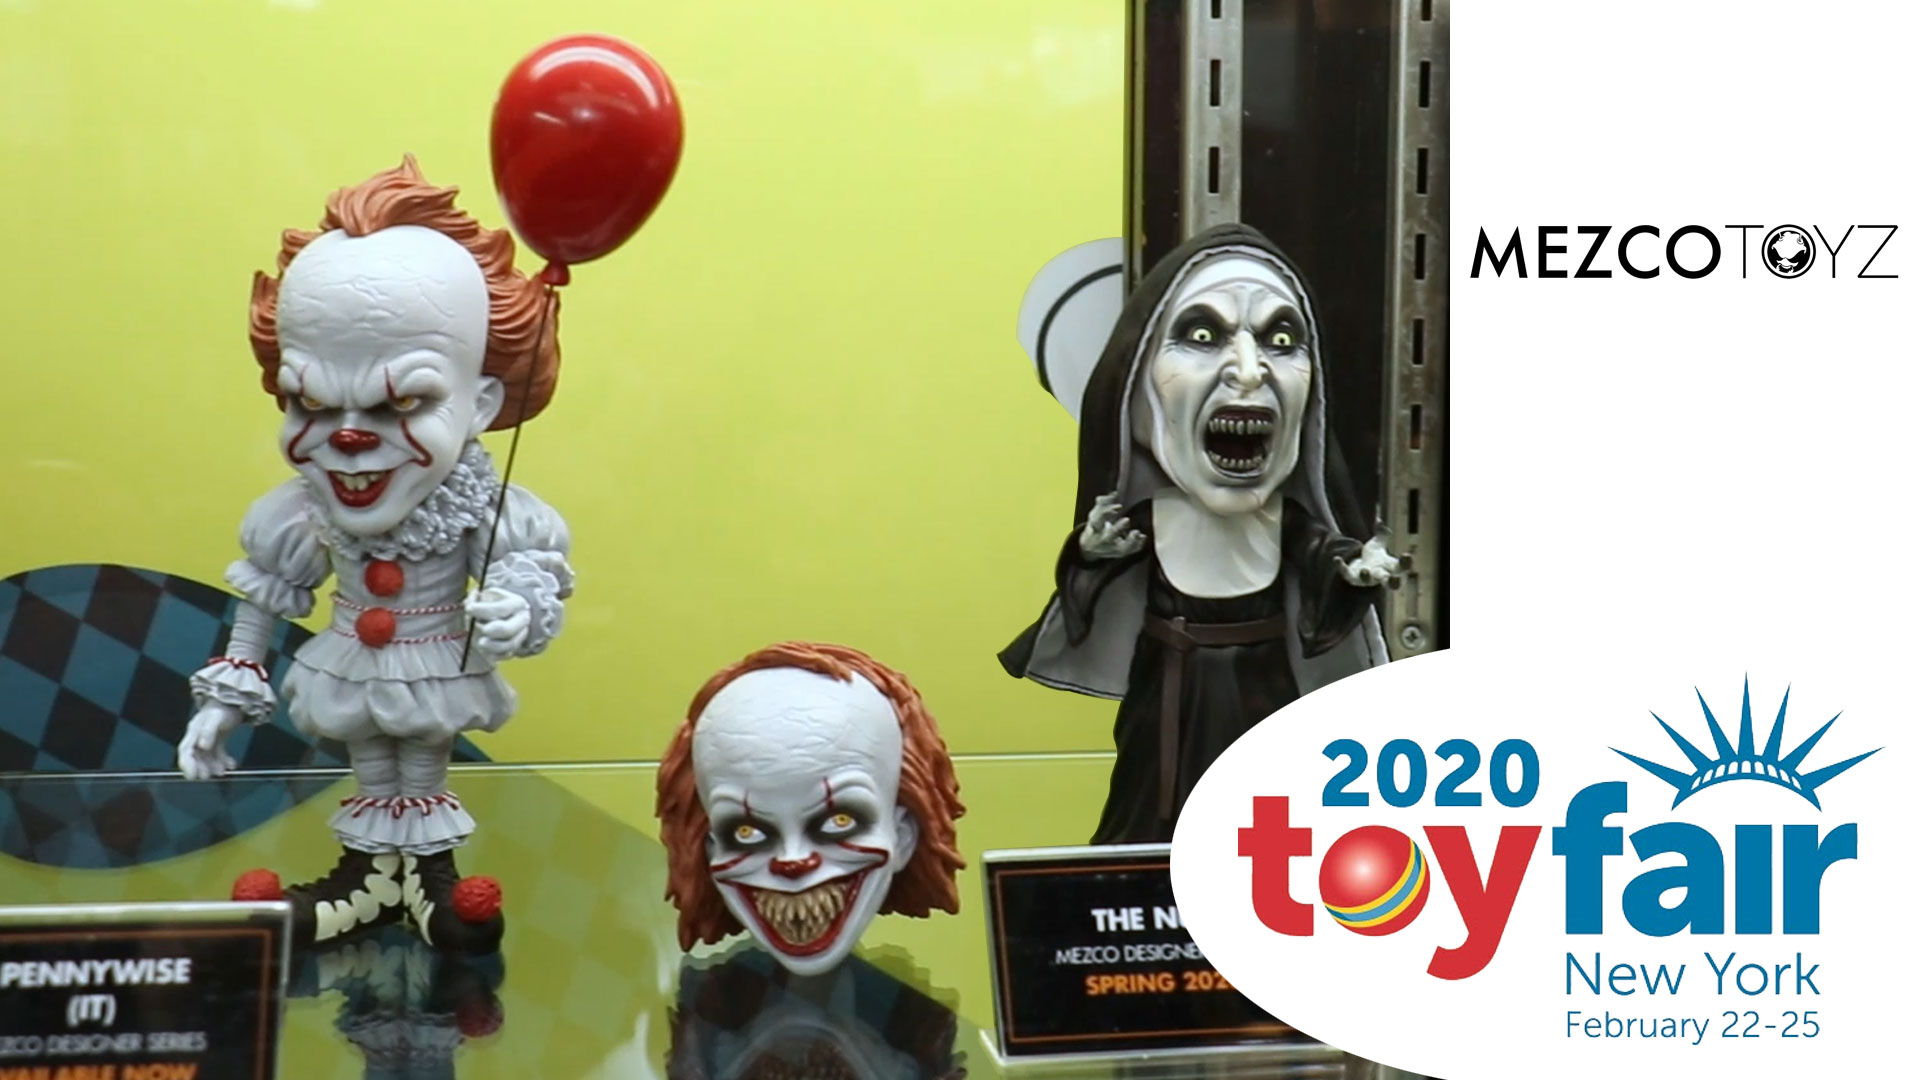 Mezco Toys @ Toy Fair 2020